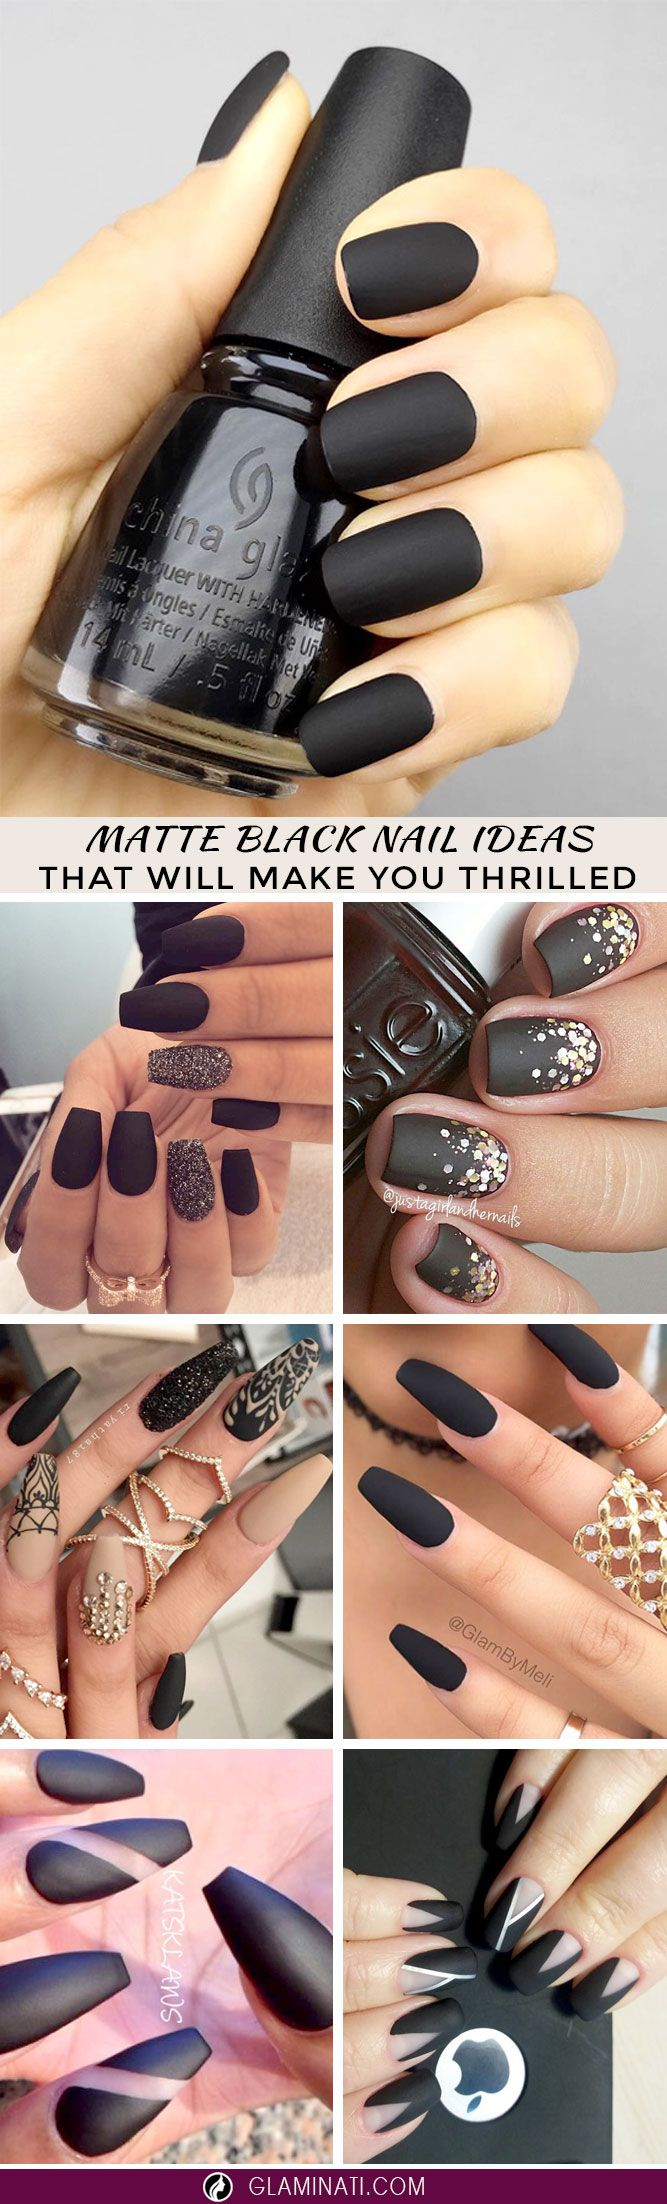 21 Matte Black Nails That Will Make You Thrilled | Pinterest ...